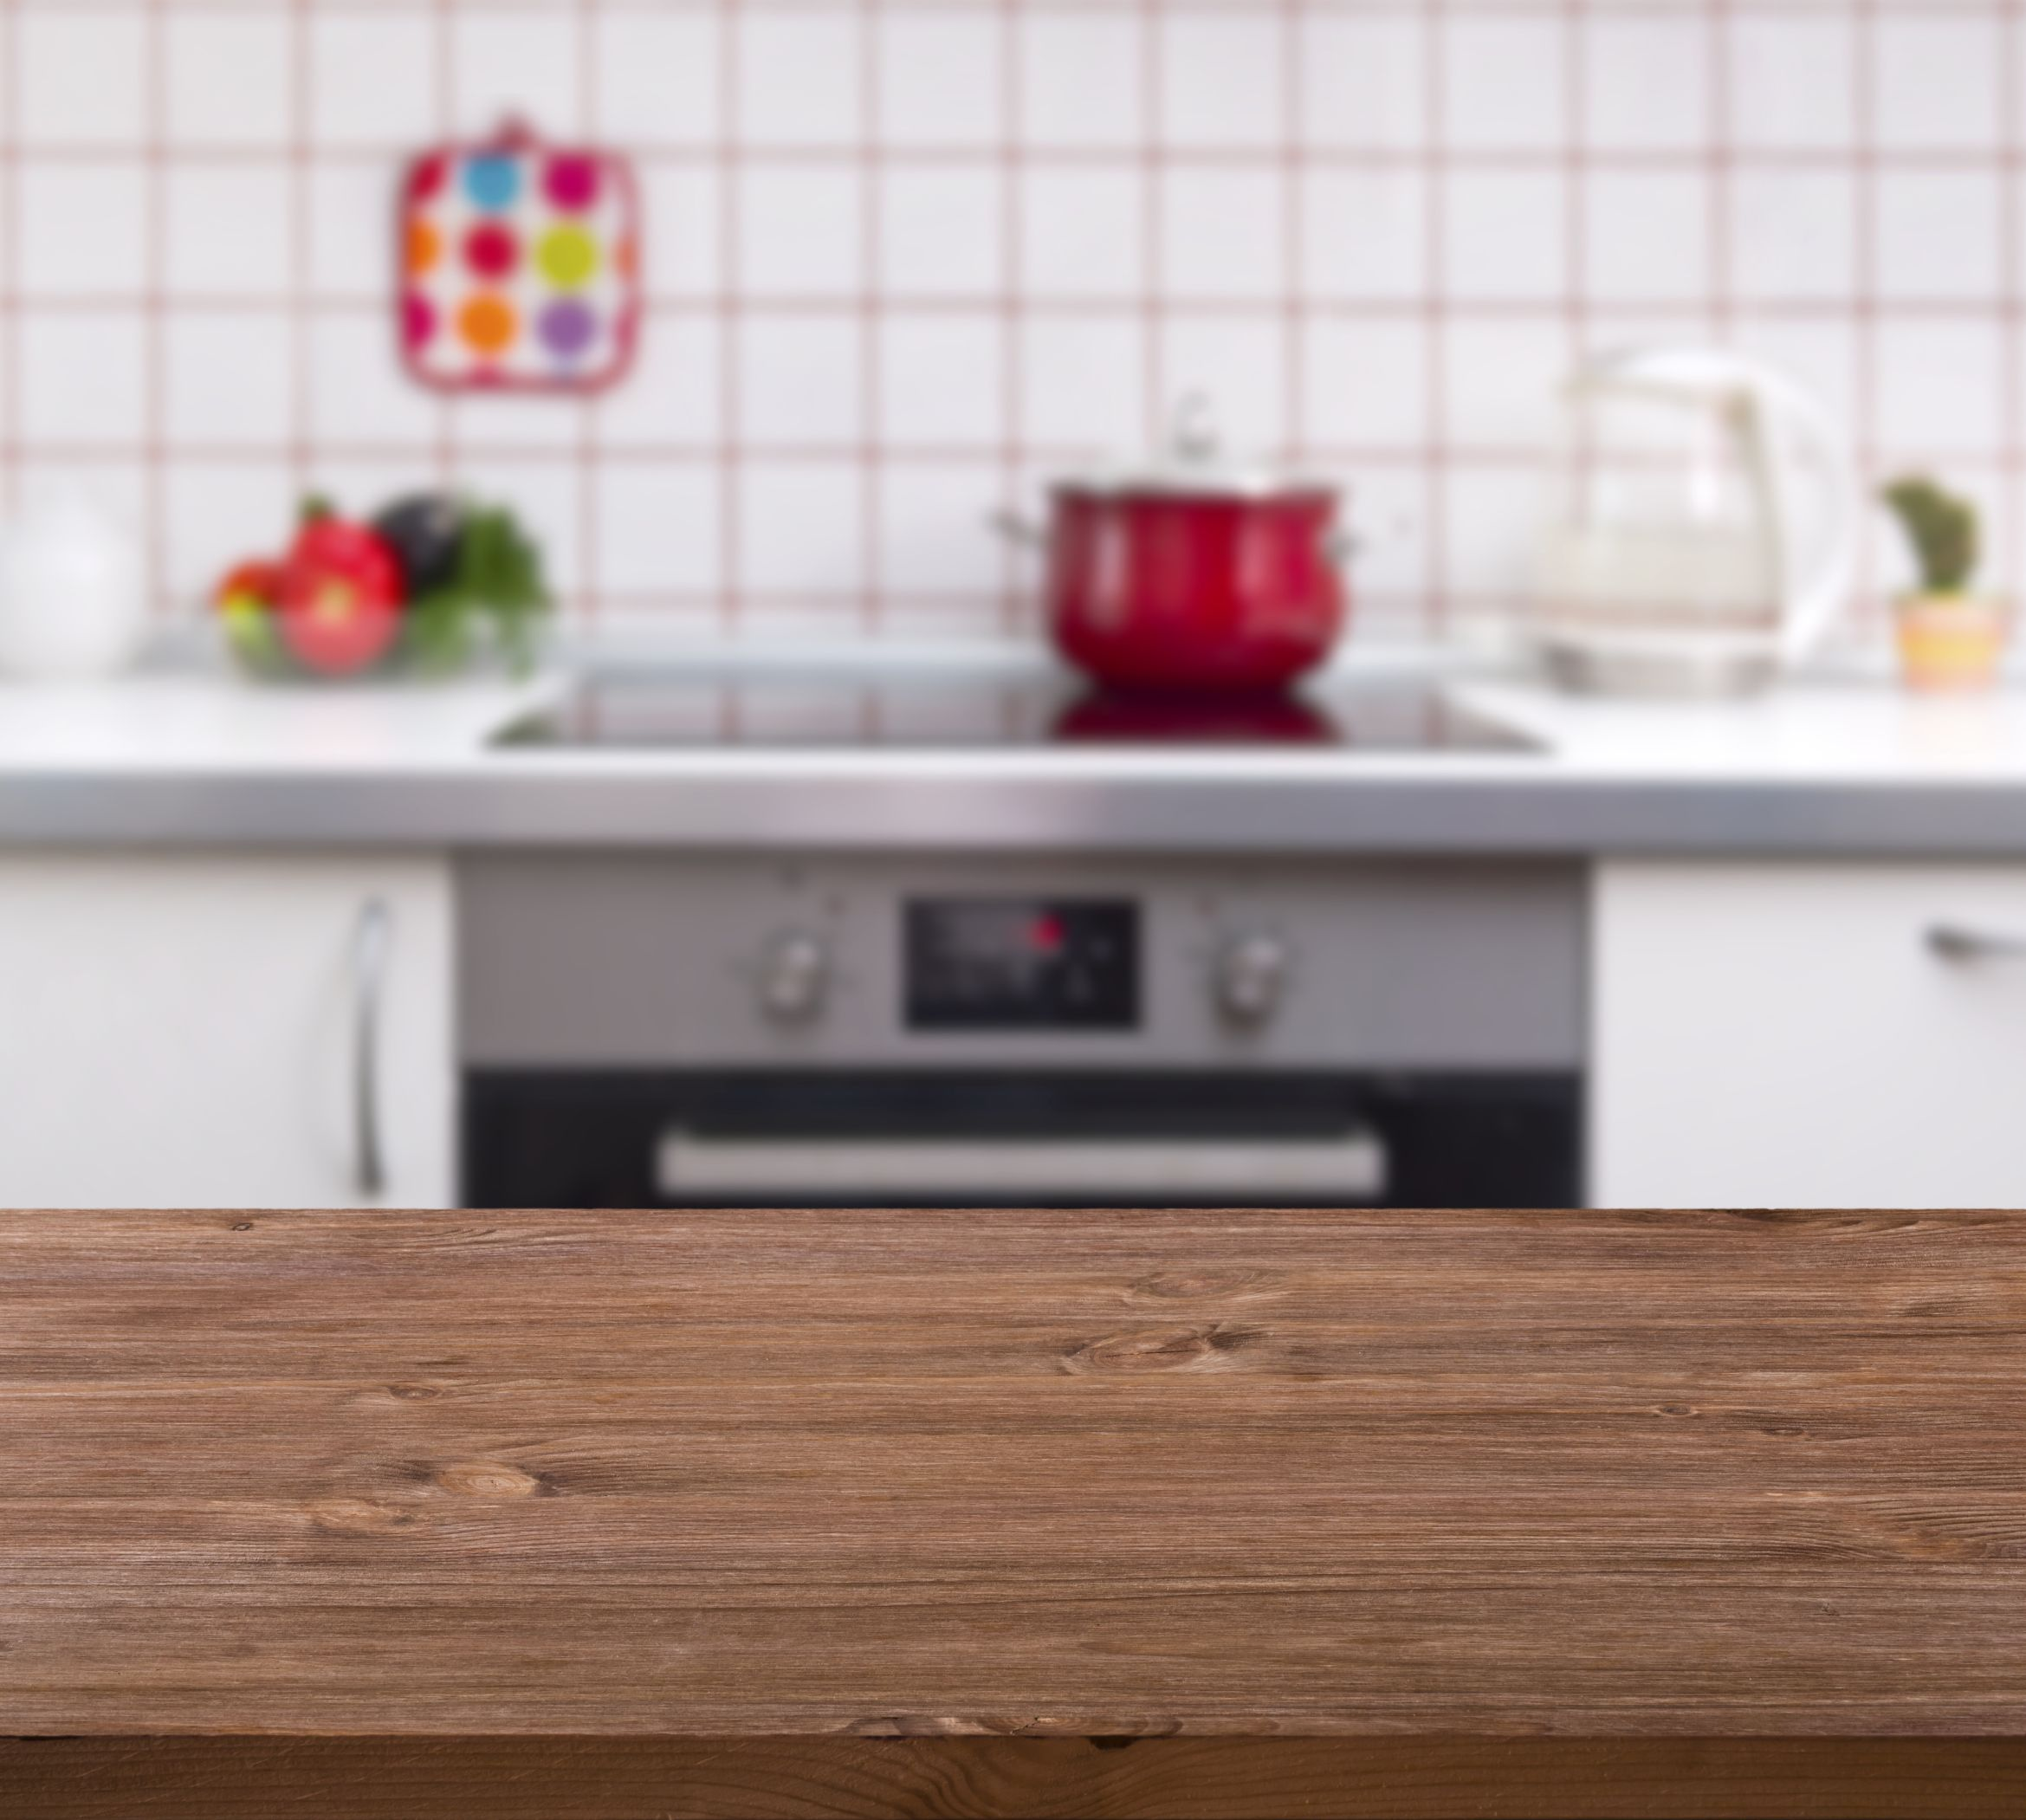 Istock 000041811192 Large Jpg 2339 2101 Kitchen Benches Kitchen Clipart Wooden Tables